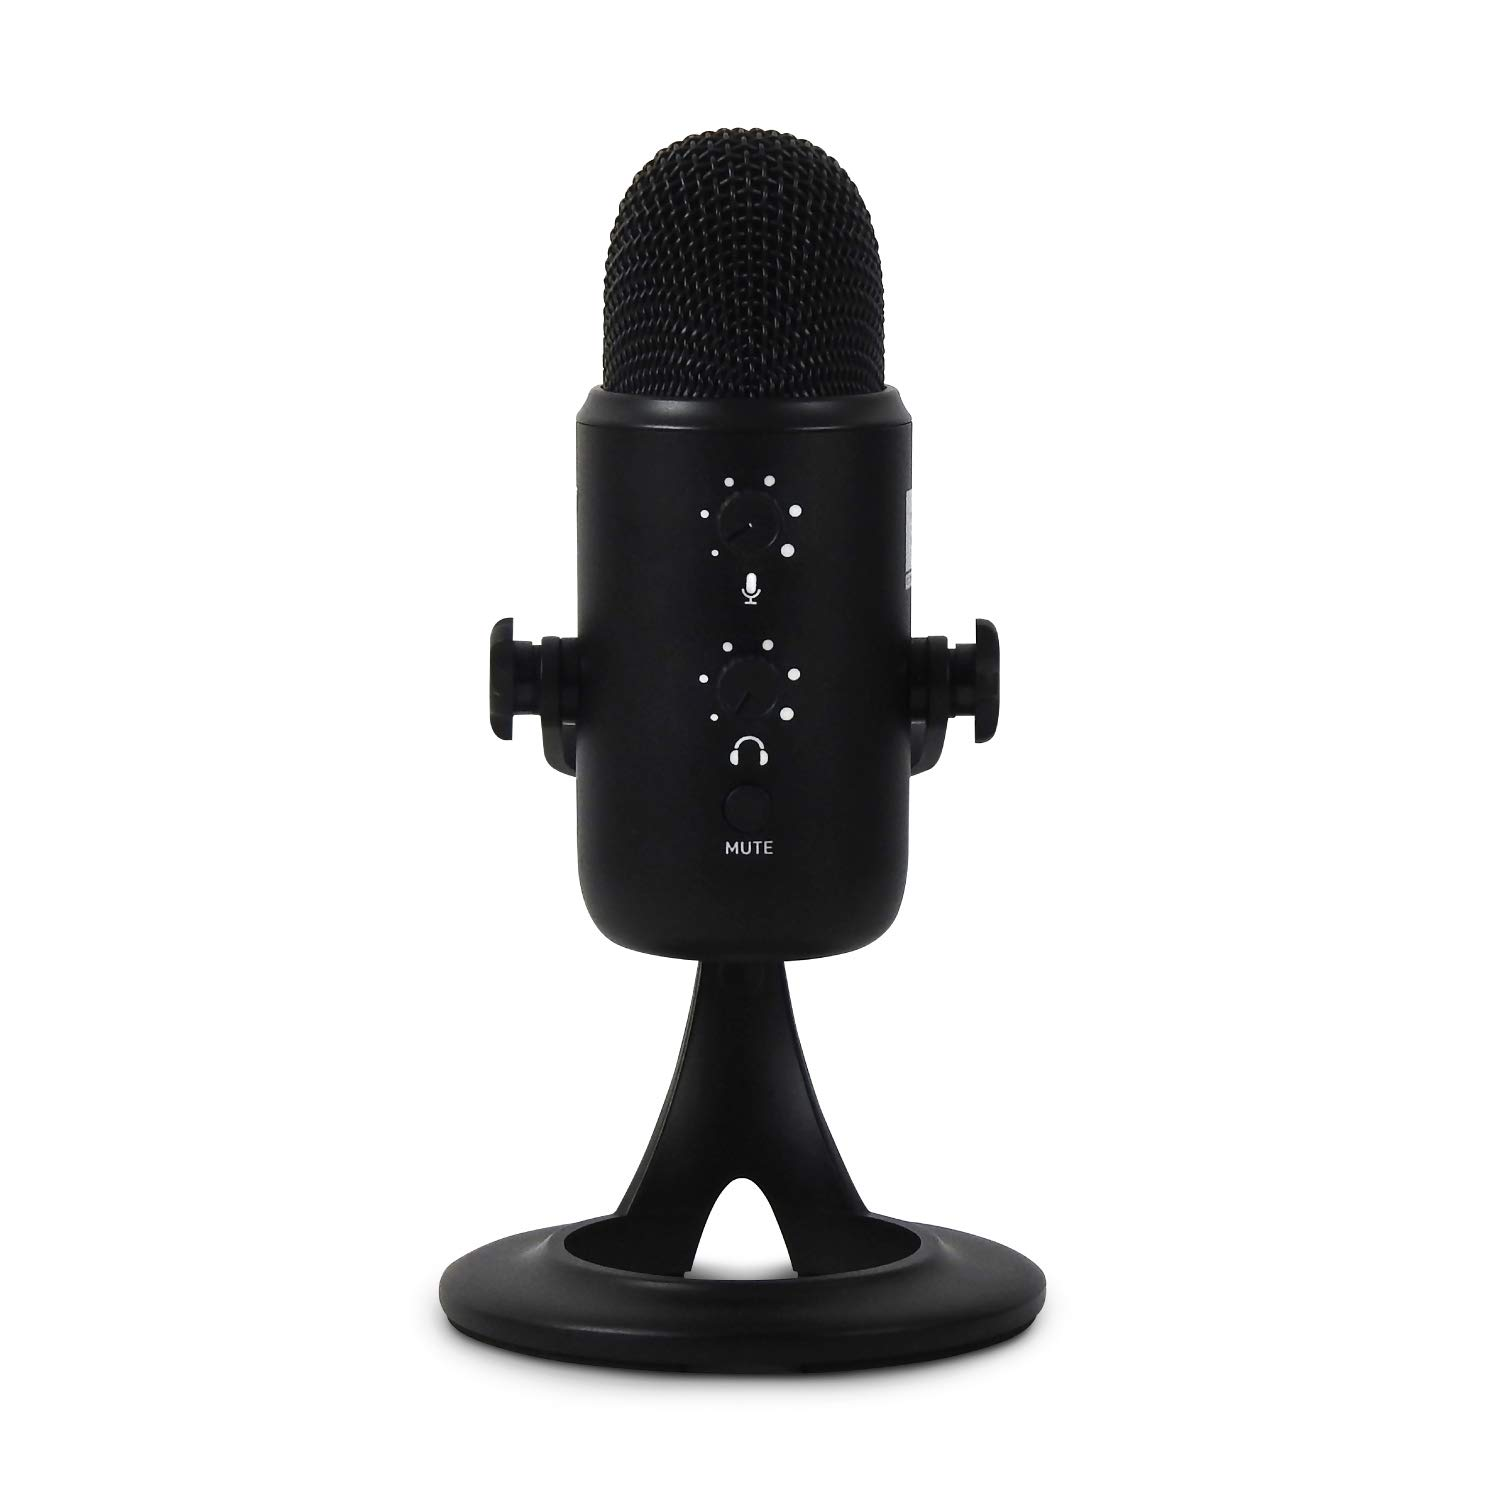 JBL Commercial CSUM10 Condenser USB Microphone for ₹5,799